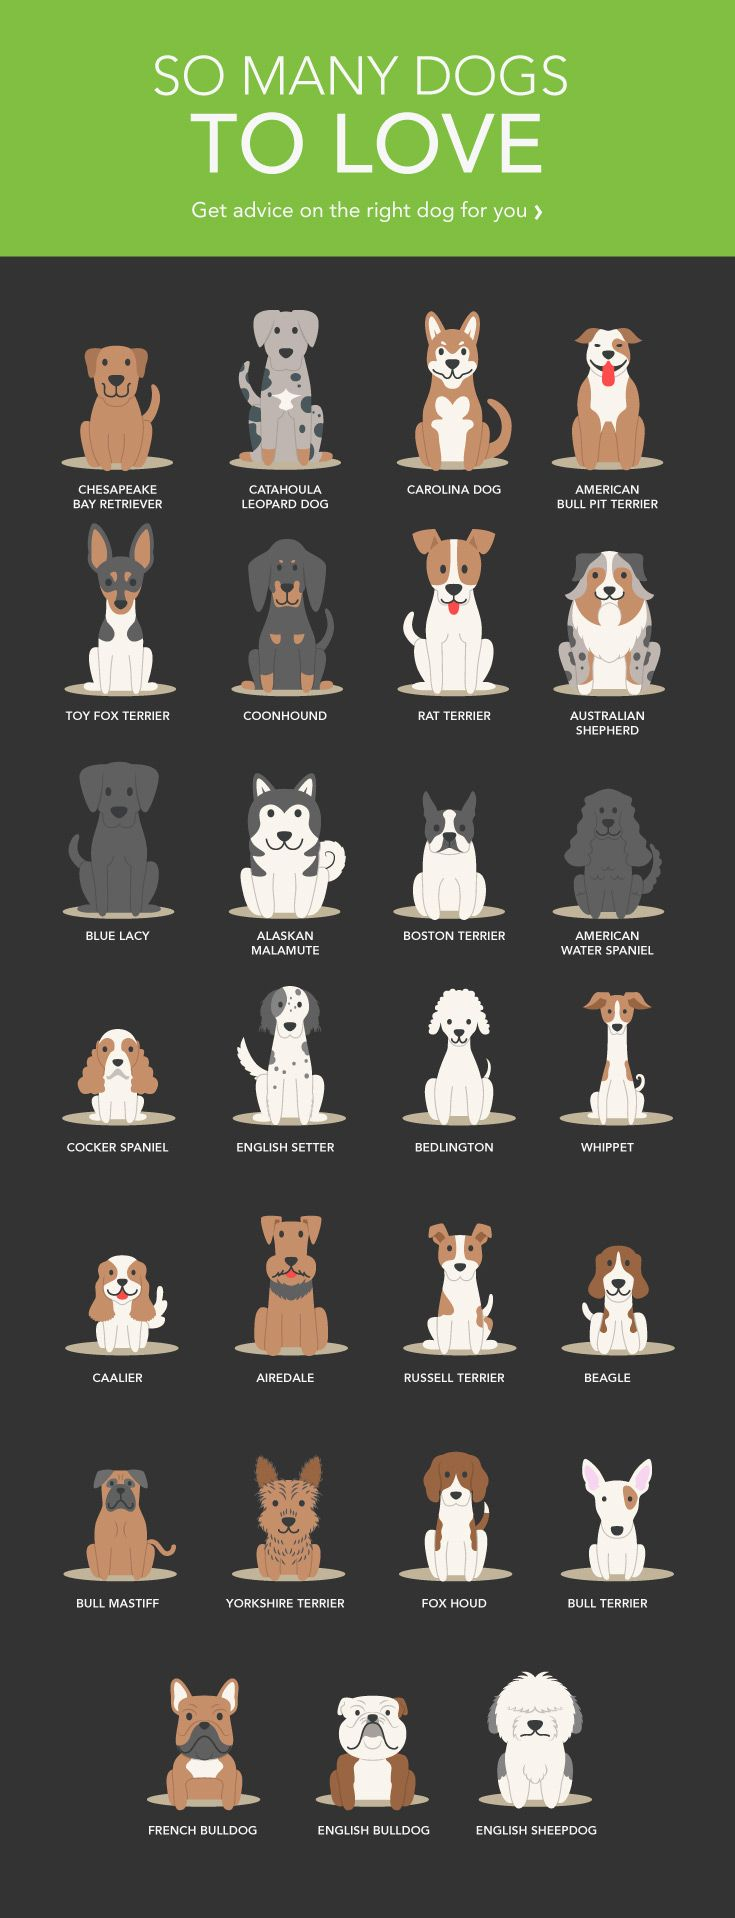 What Kind of Dog Should I Get?